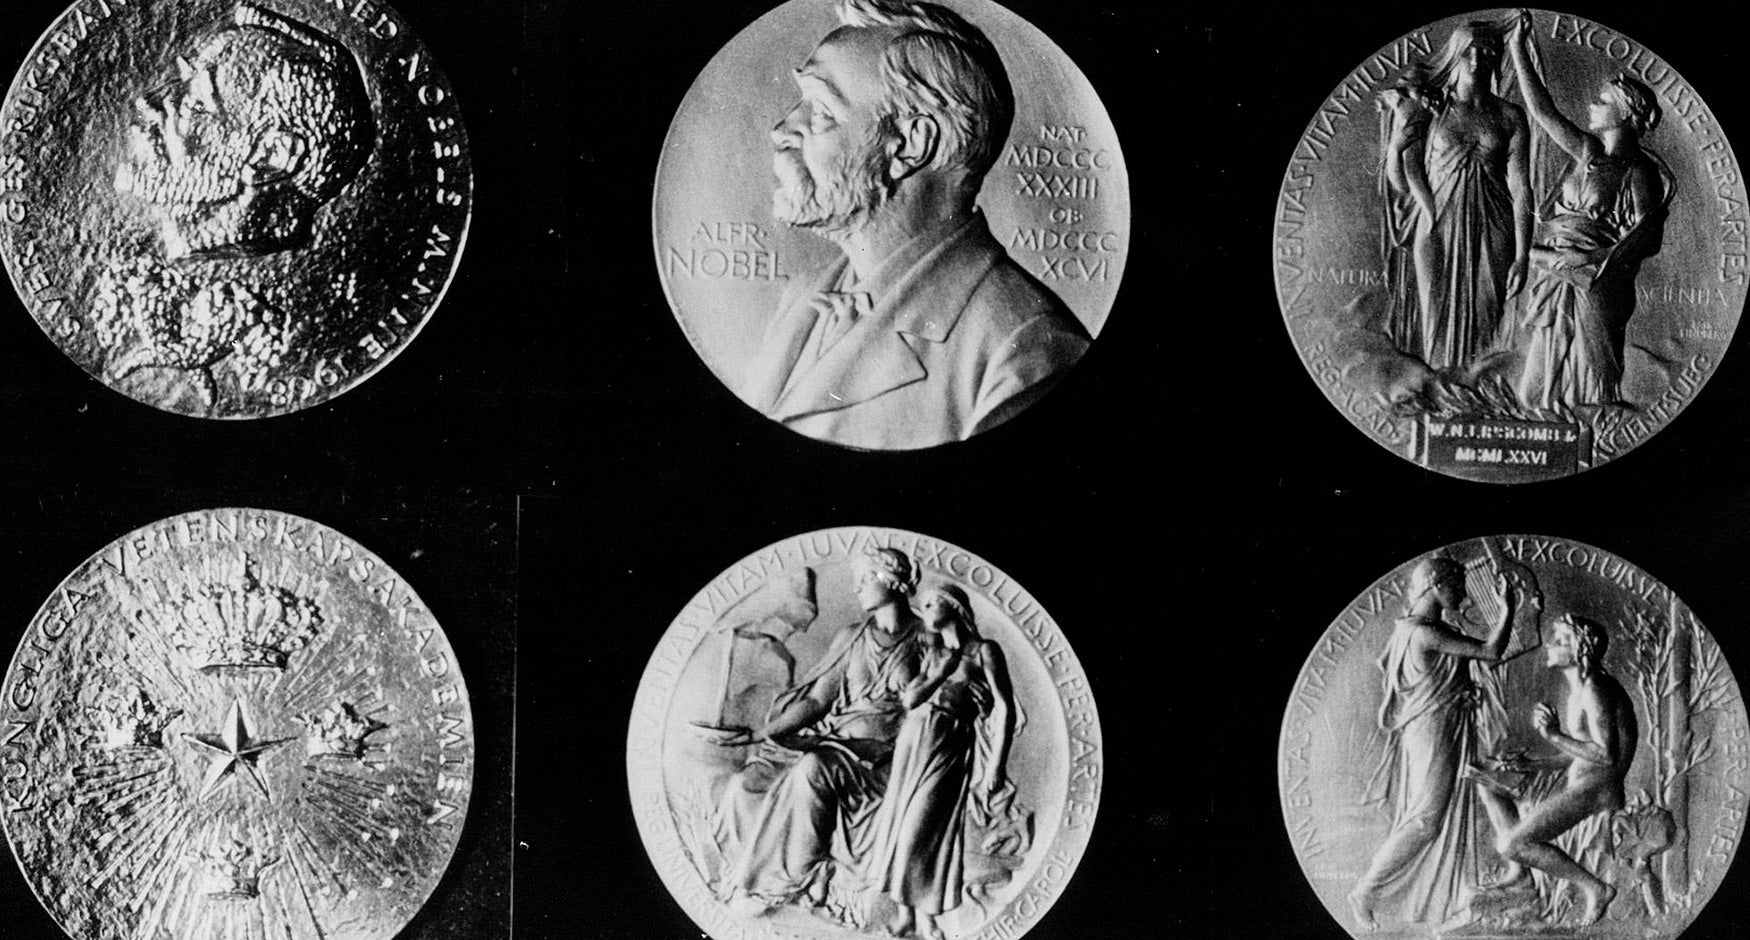 December 10th 1901: The first Nobel prizes